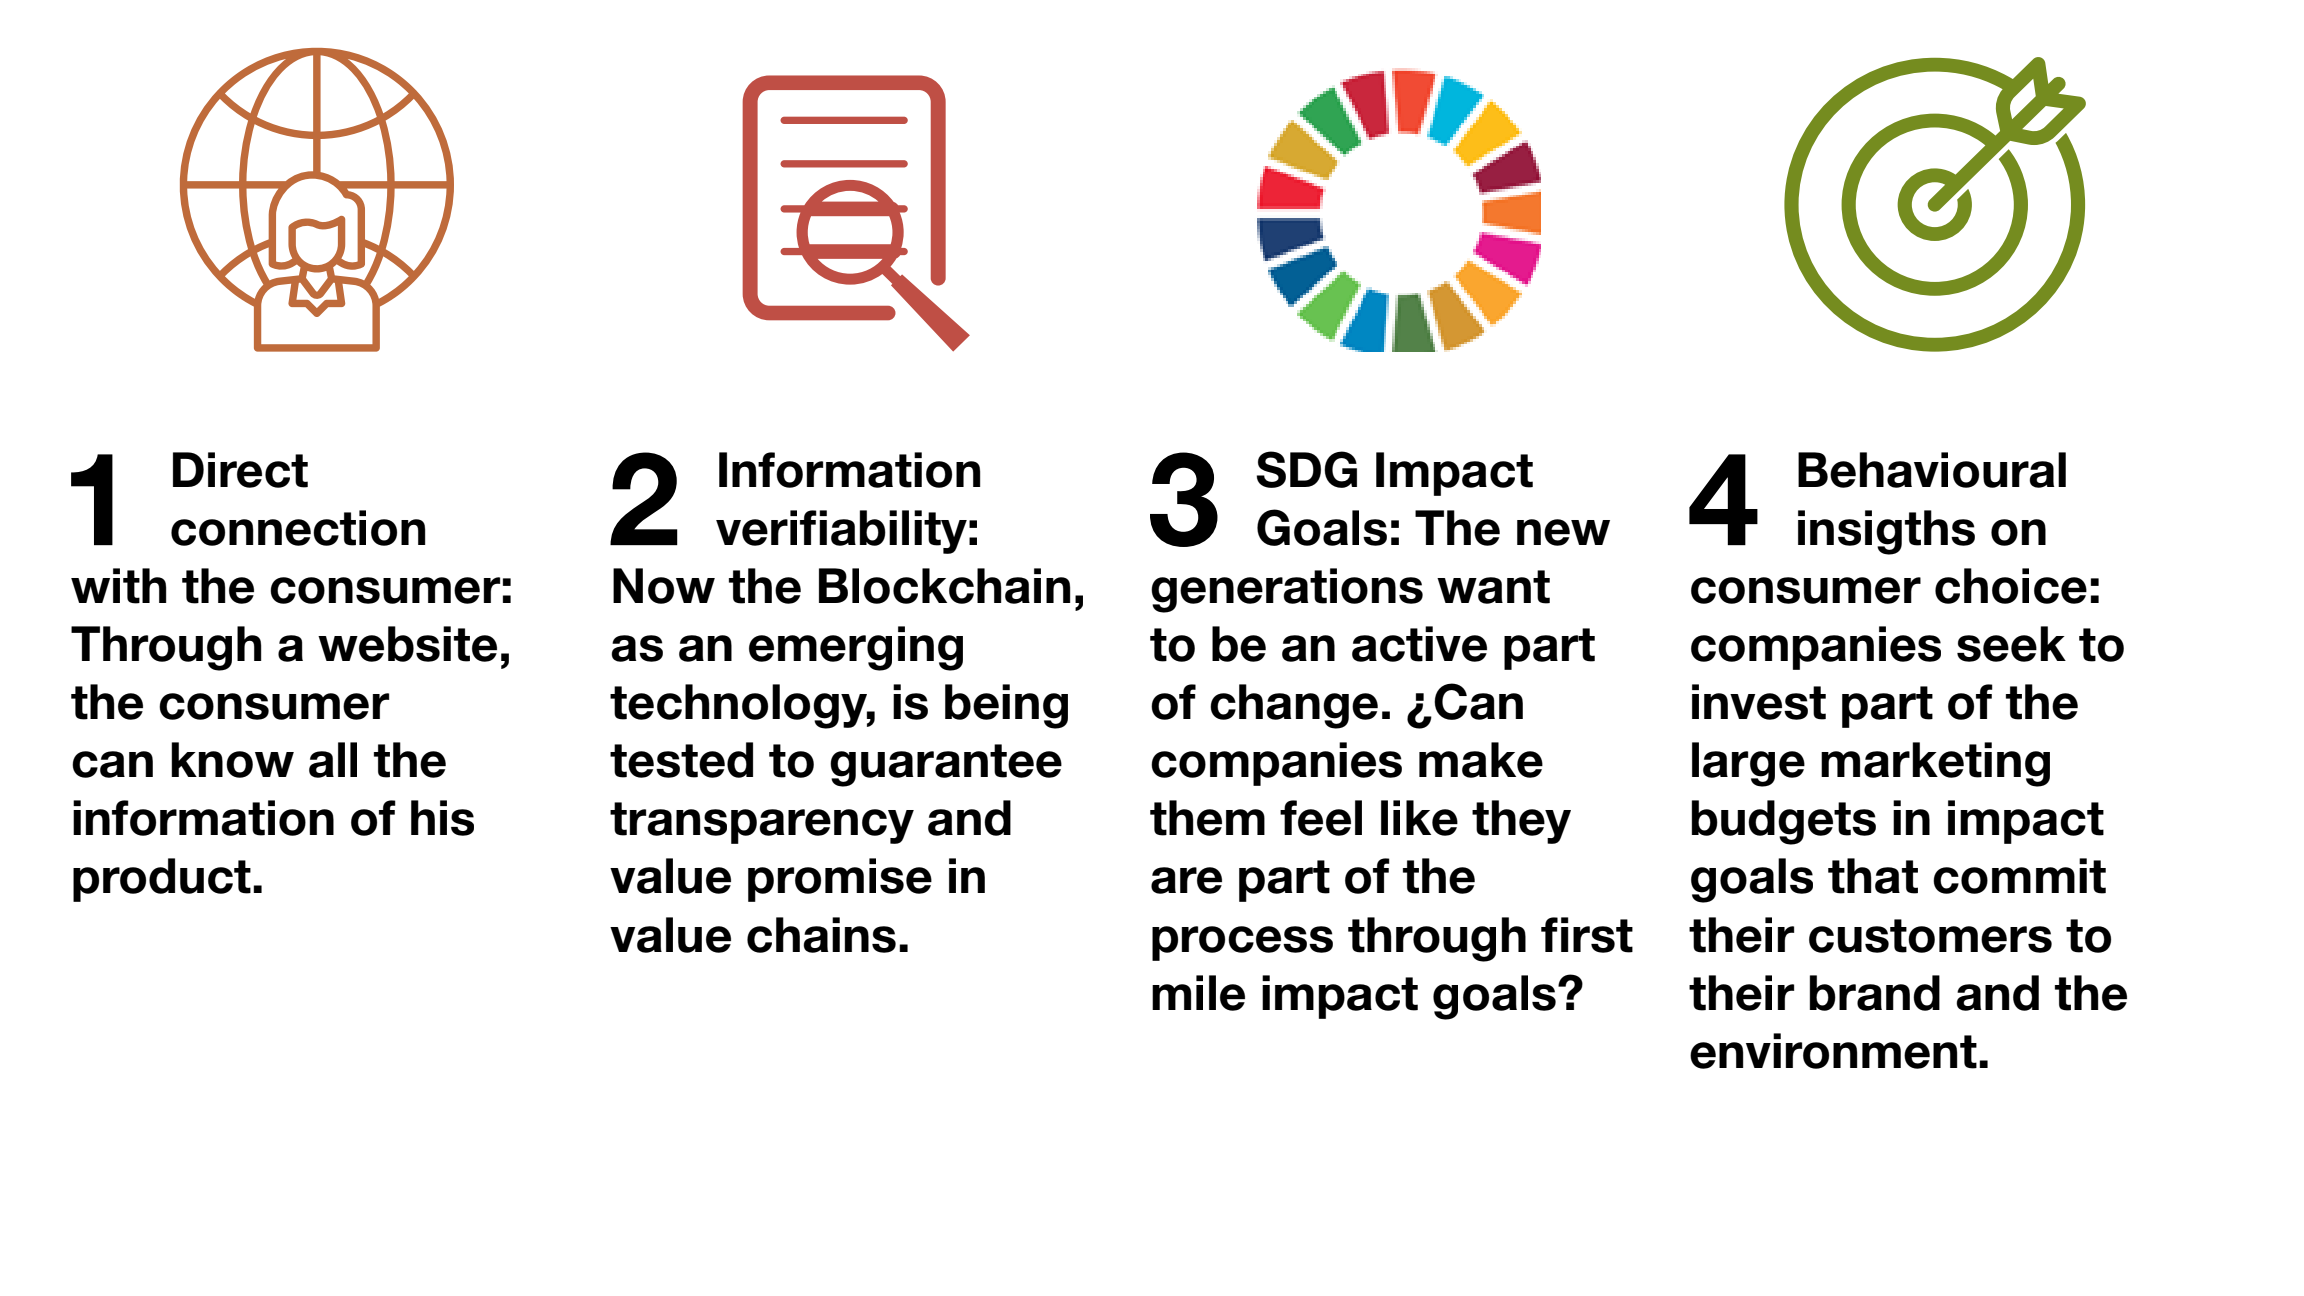 This new business model proposed by UNDP Ecuador is based on these four pillars